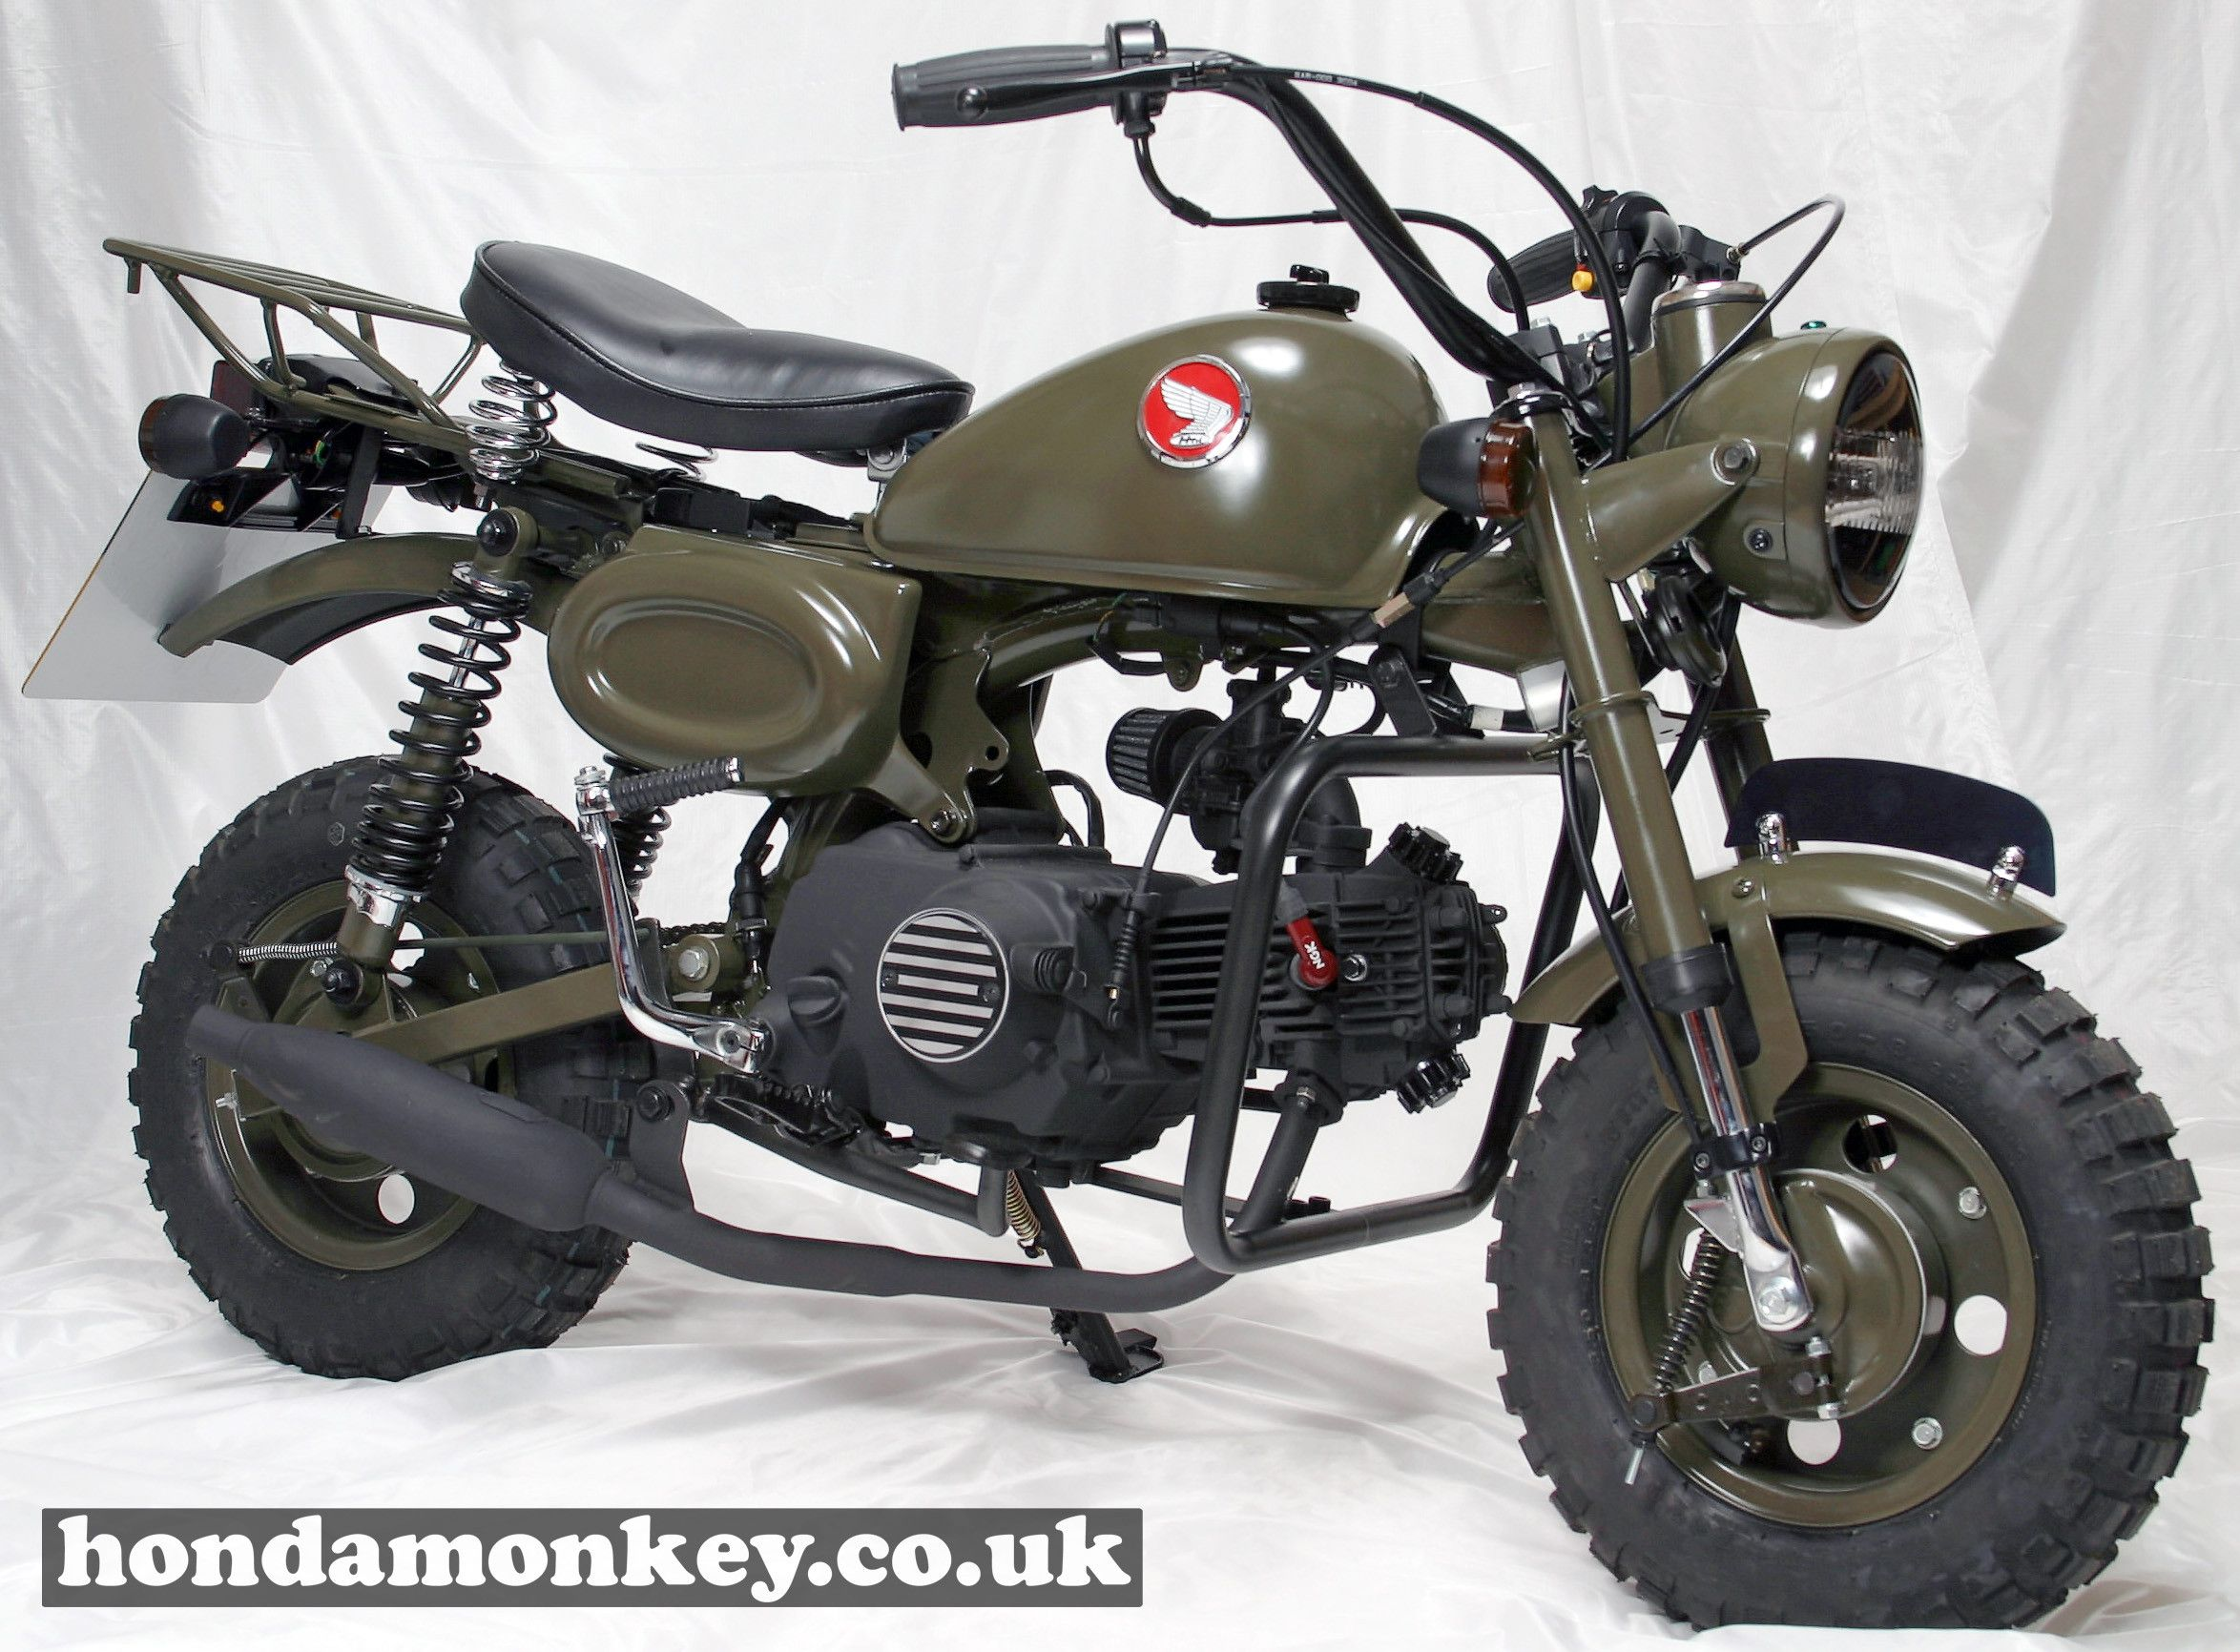 Honda Ruckus Military How About Another Motorcycles You D Like To Remakes Of Thread Mini Bike Mini Motorbike Motorcycle